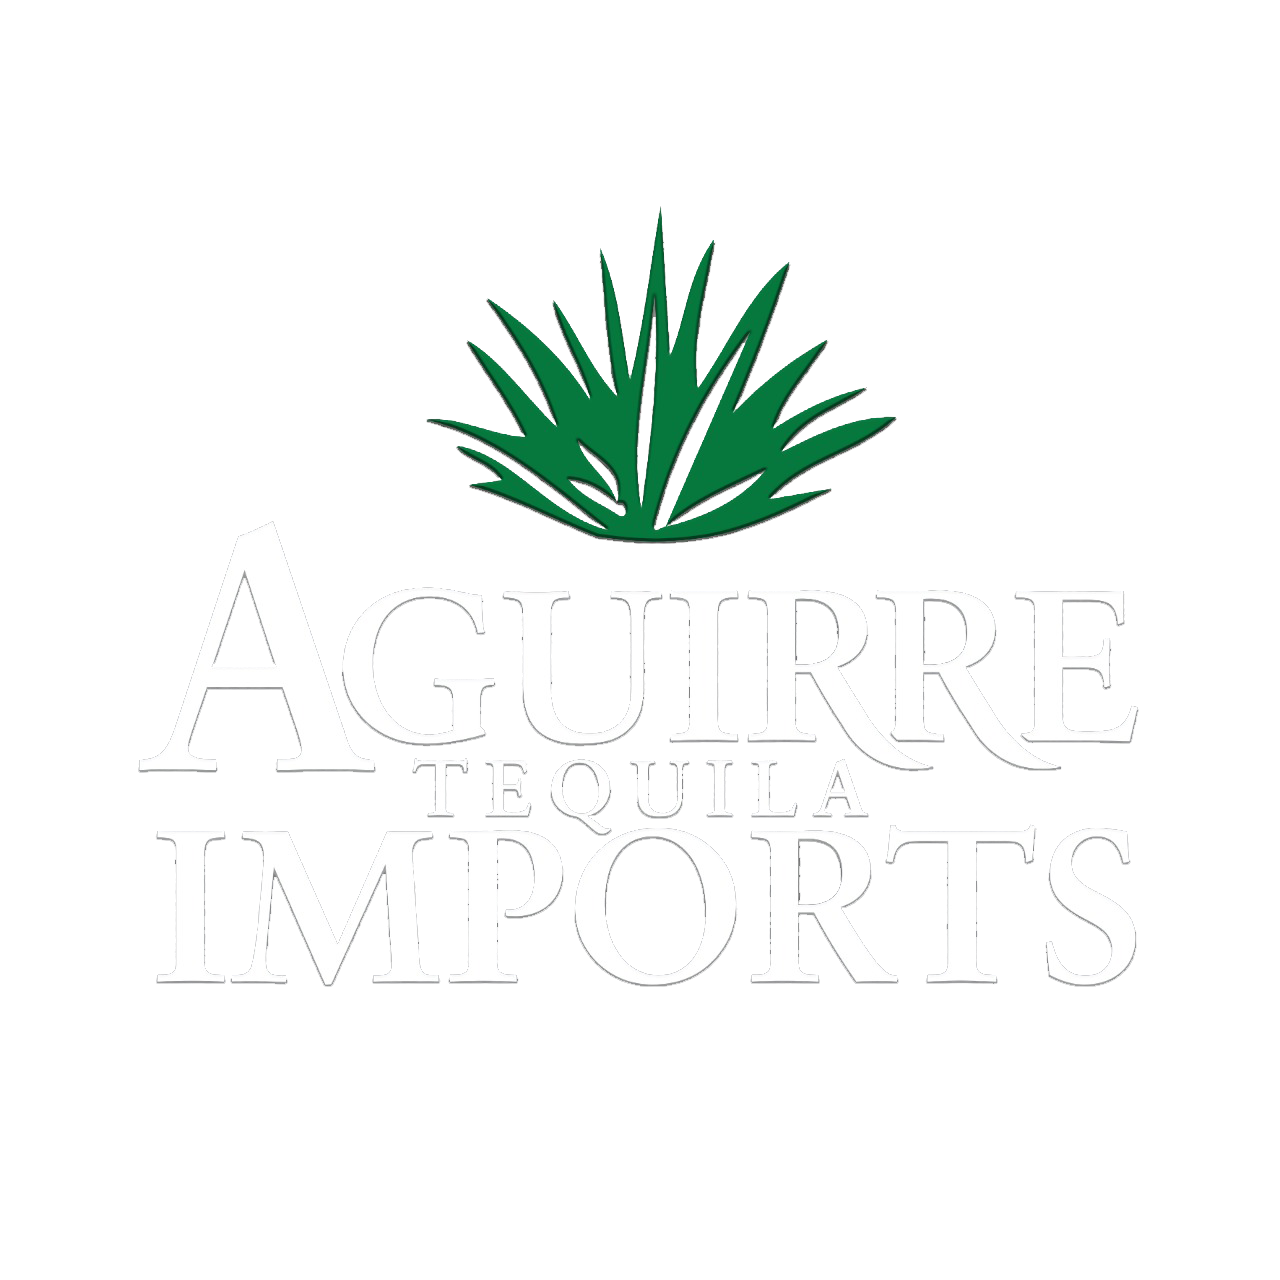 AGUIRRE IMPORTS LOGO WHITE PNG